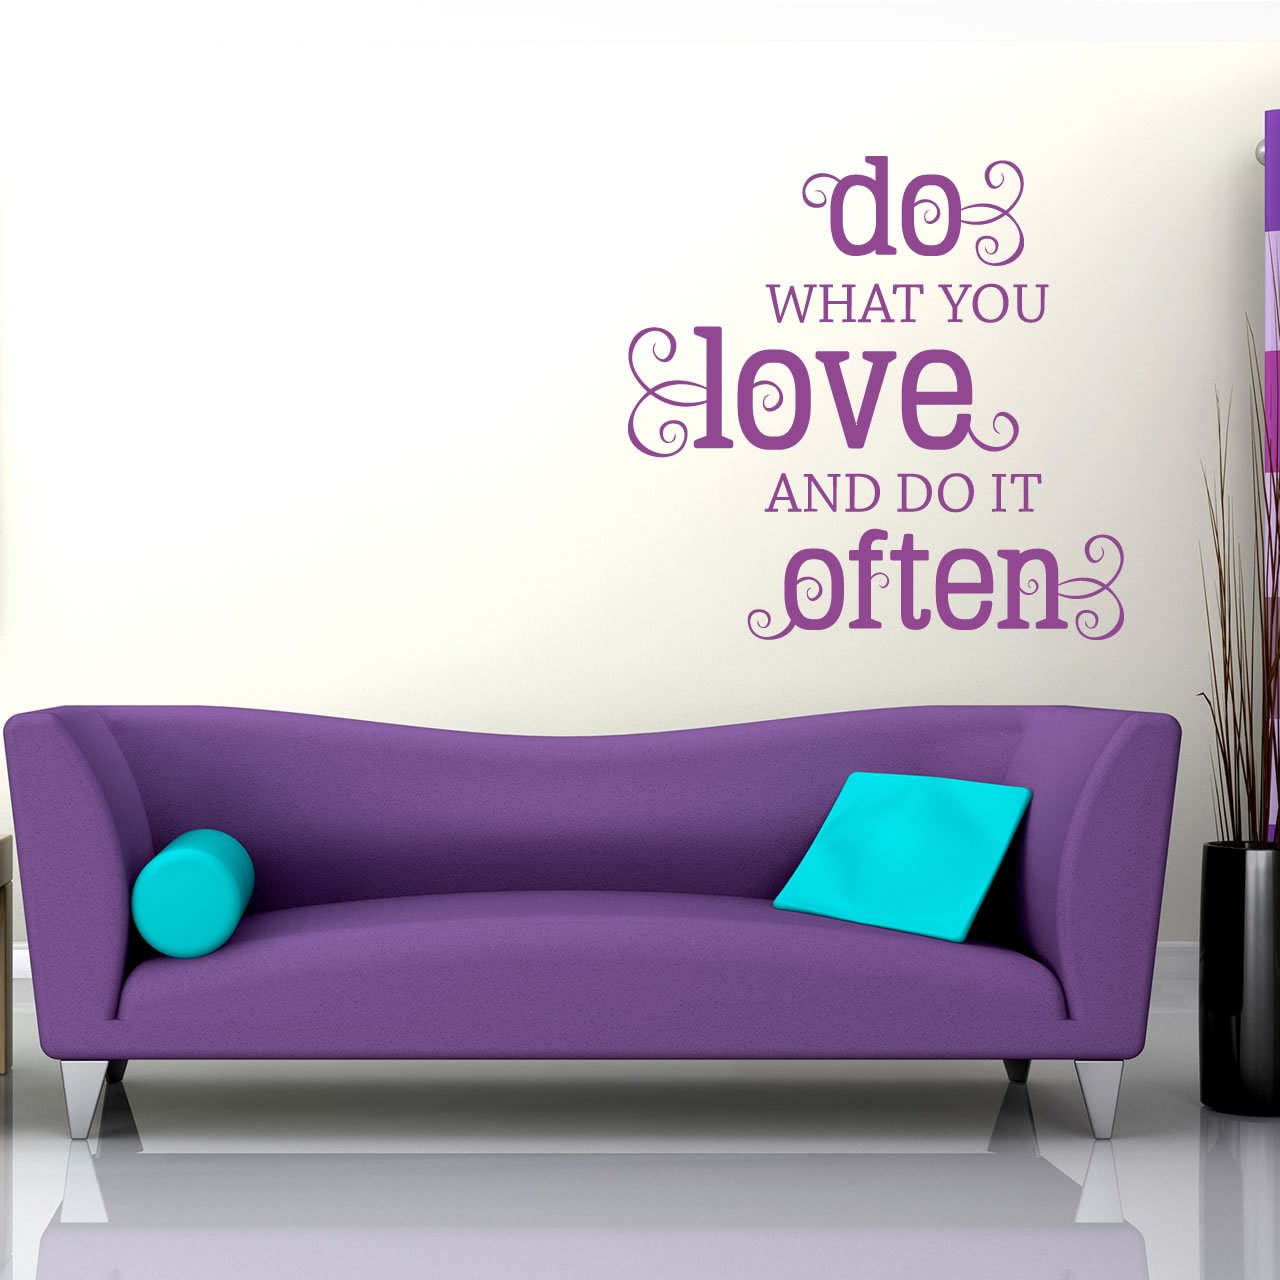 do what you love quote wall sticker decal ebay life goes on wall sticker quote wall decal art ebay